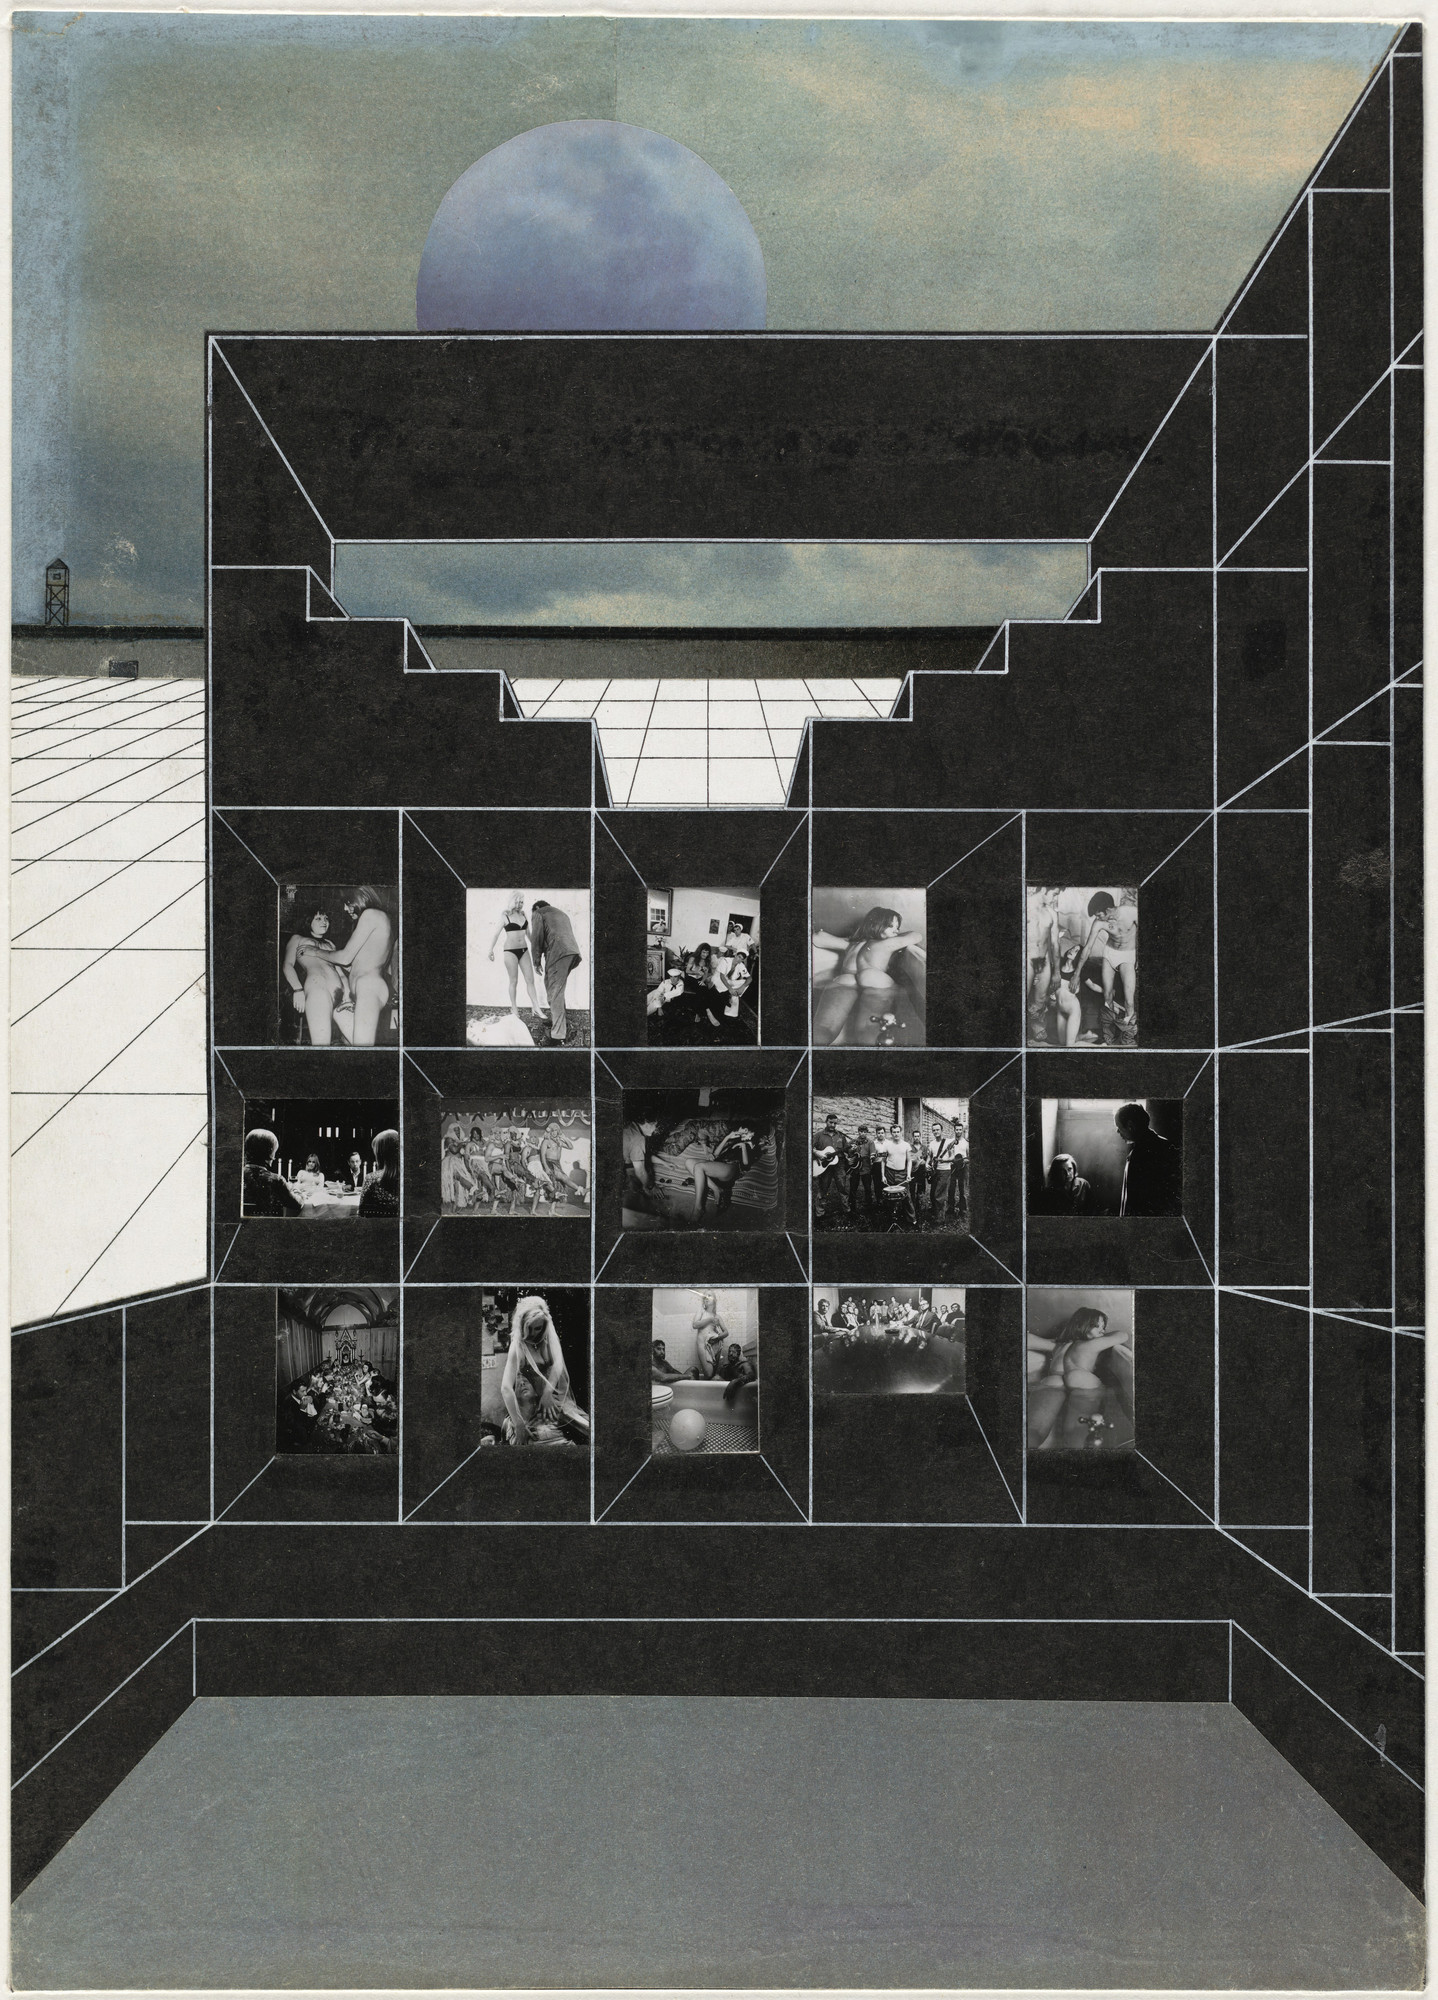 Rem Koolhaas, Elia Zenghelis, Madelon Vriesendorp, Zoe Zenghelis. Exodus, or the Voluntary Prisoners of Architecture: The Baths. 1972